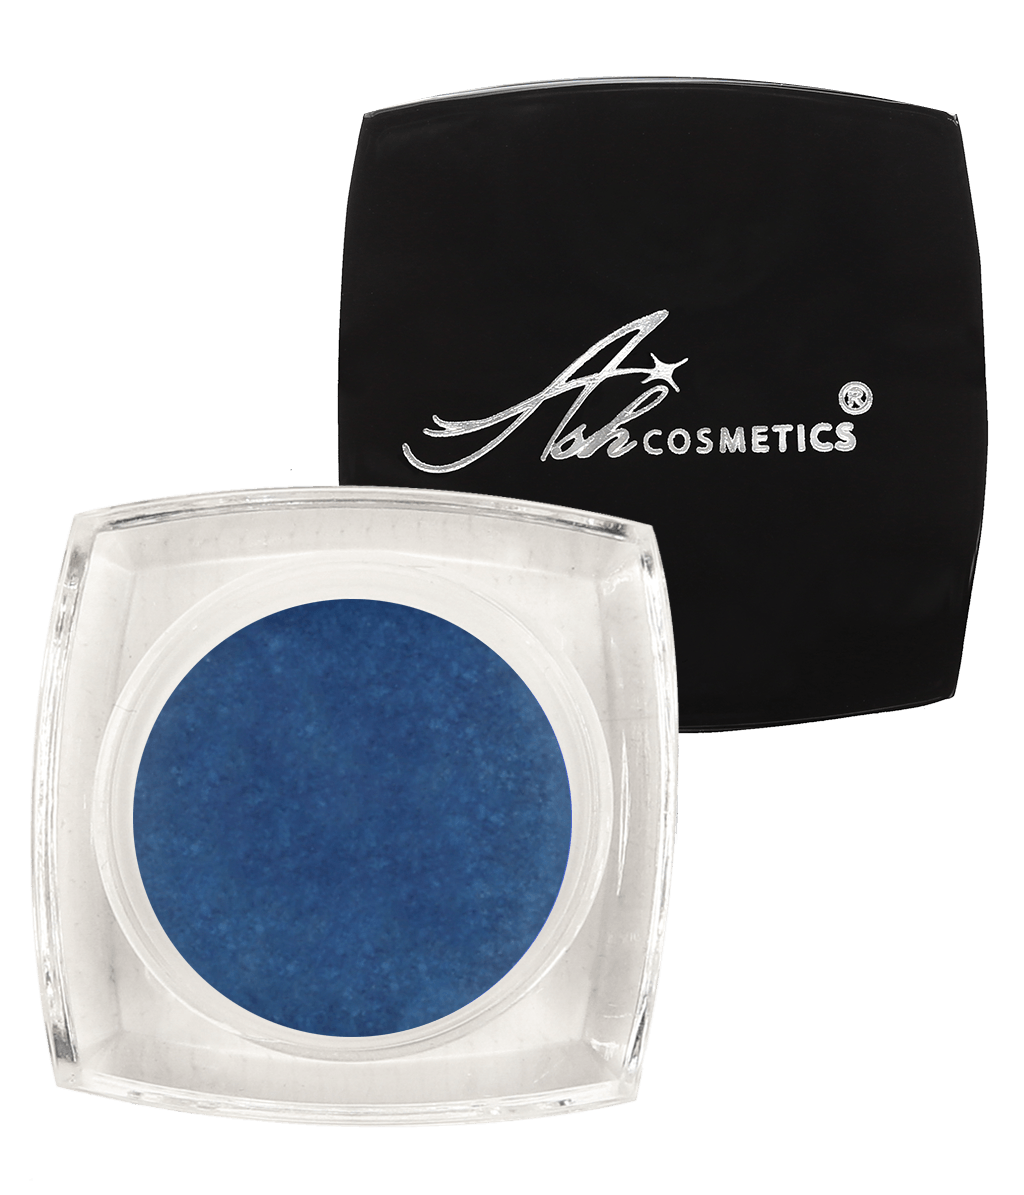 AshcosmeticsCream Eye Shadow Glamour Pot Shade Blue Zircon